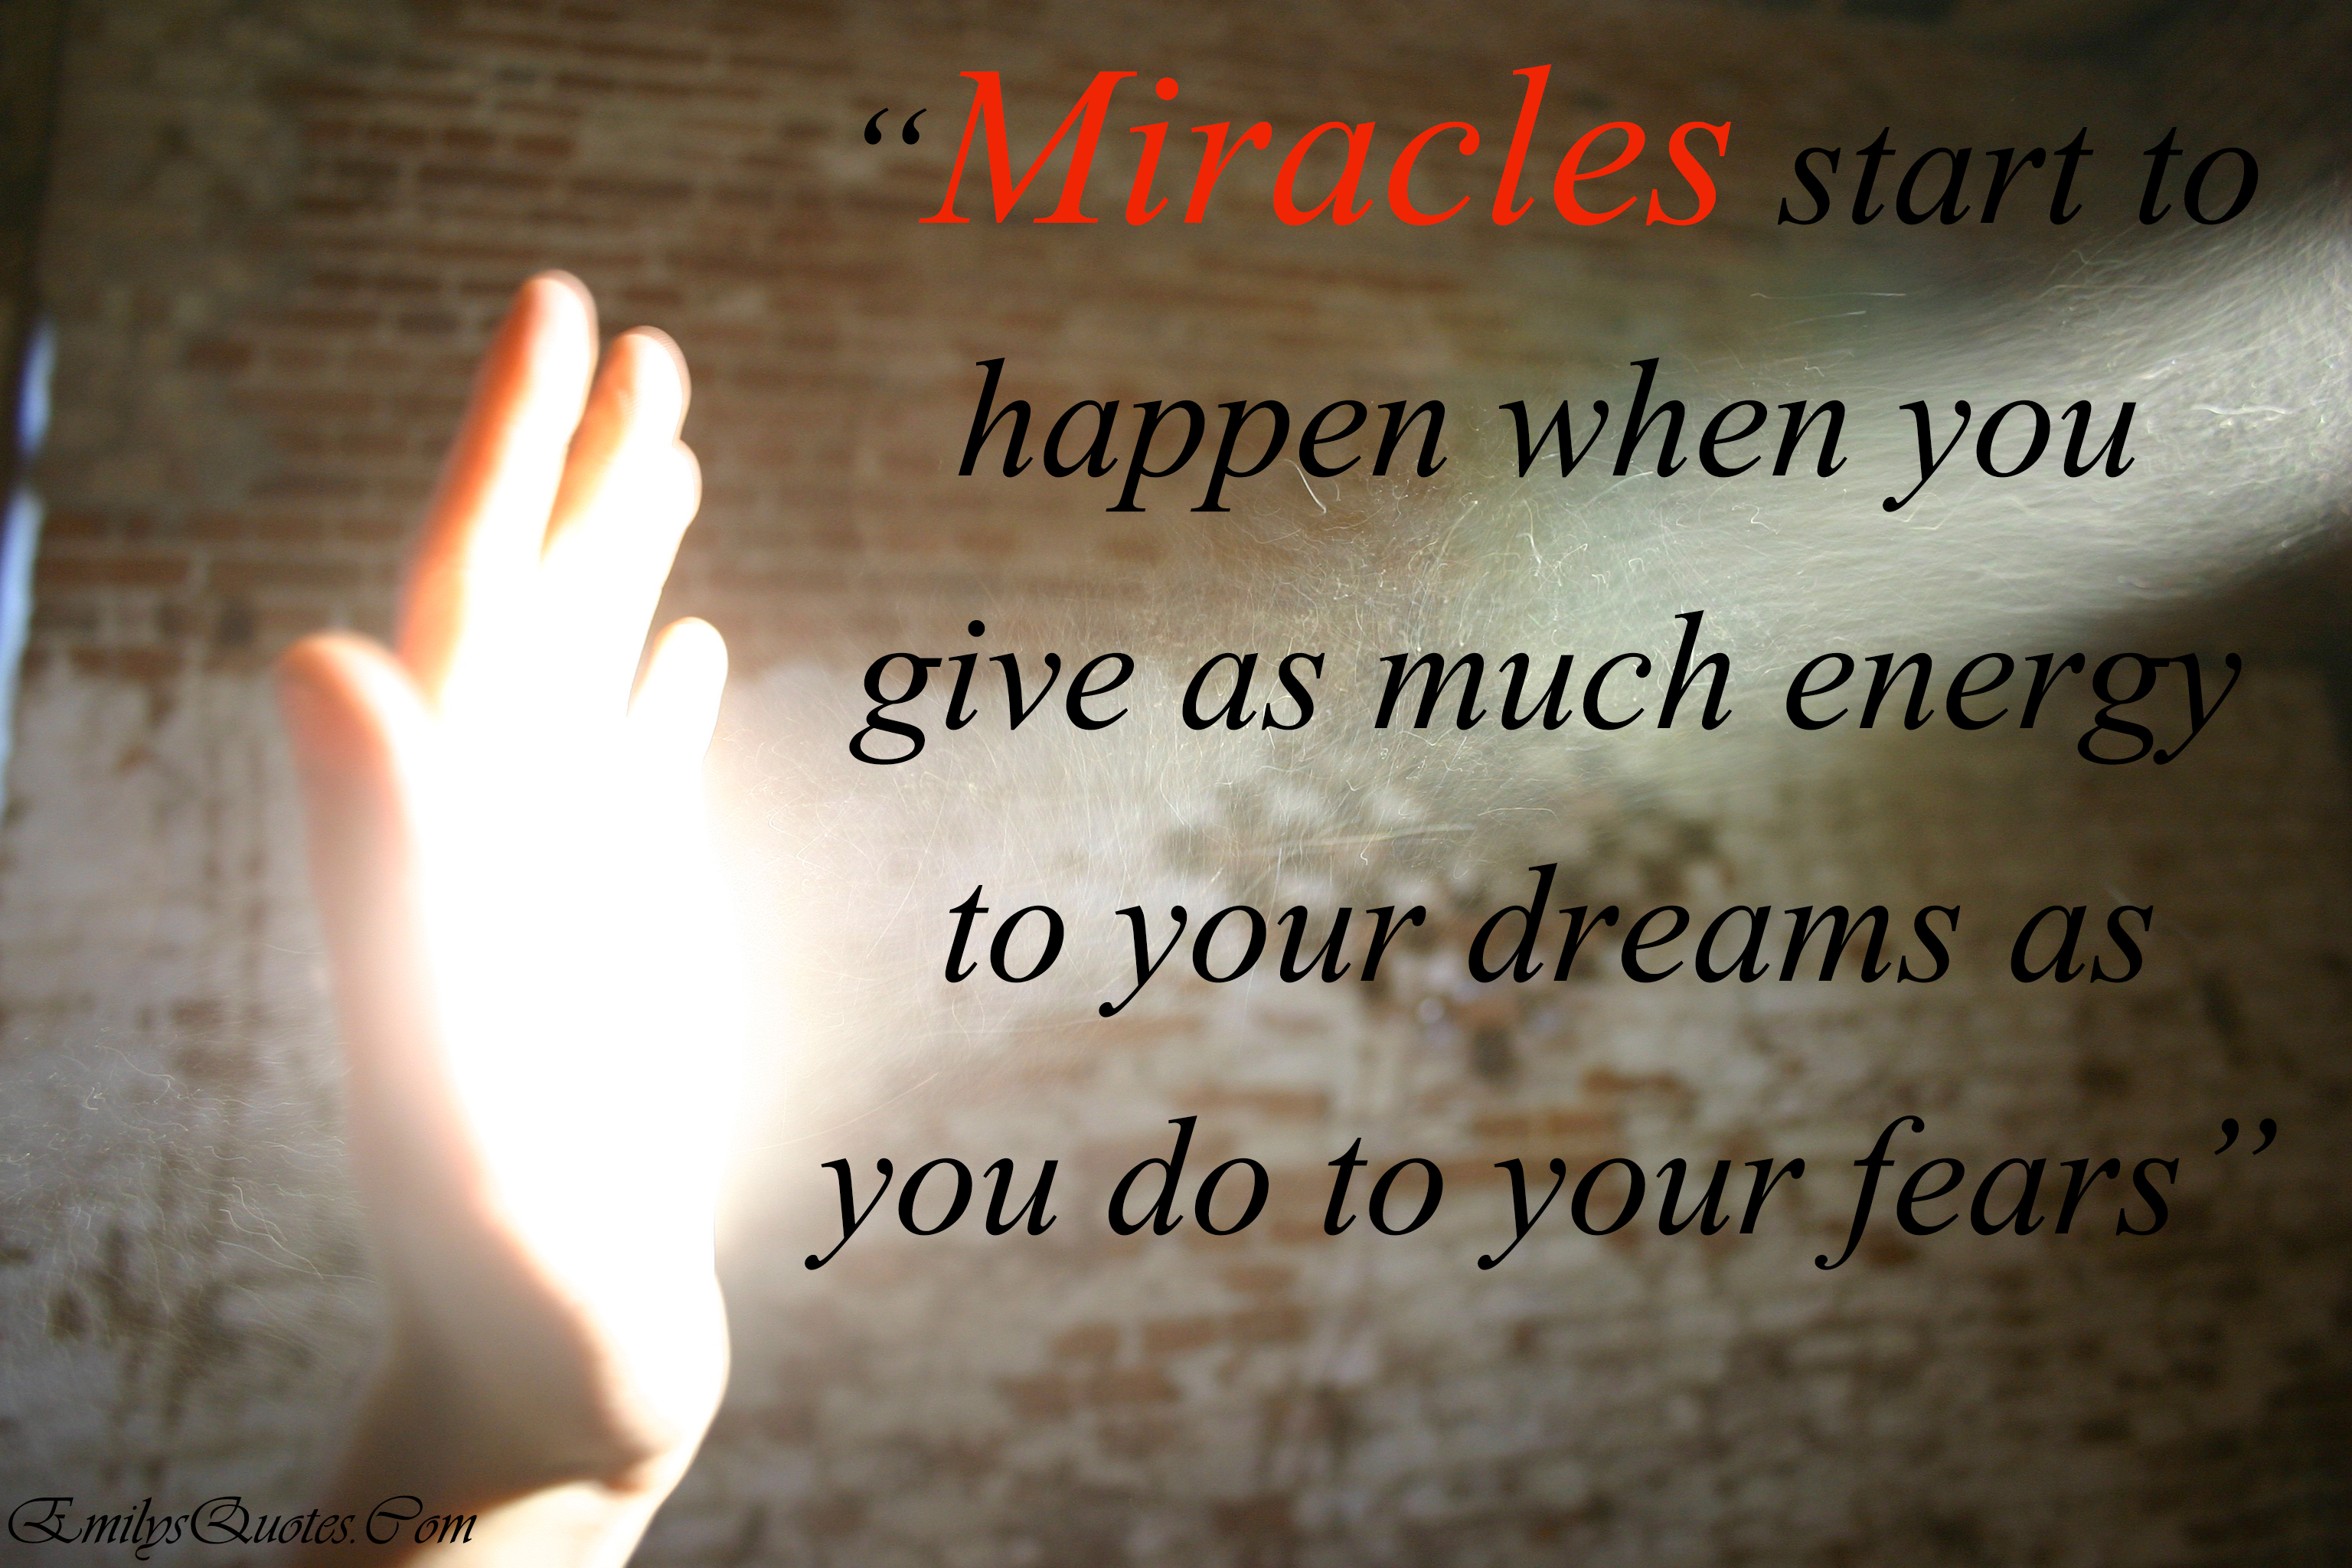 EmilysQuotes.Com - miracle, dreams, fear, energy, inspirational